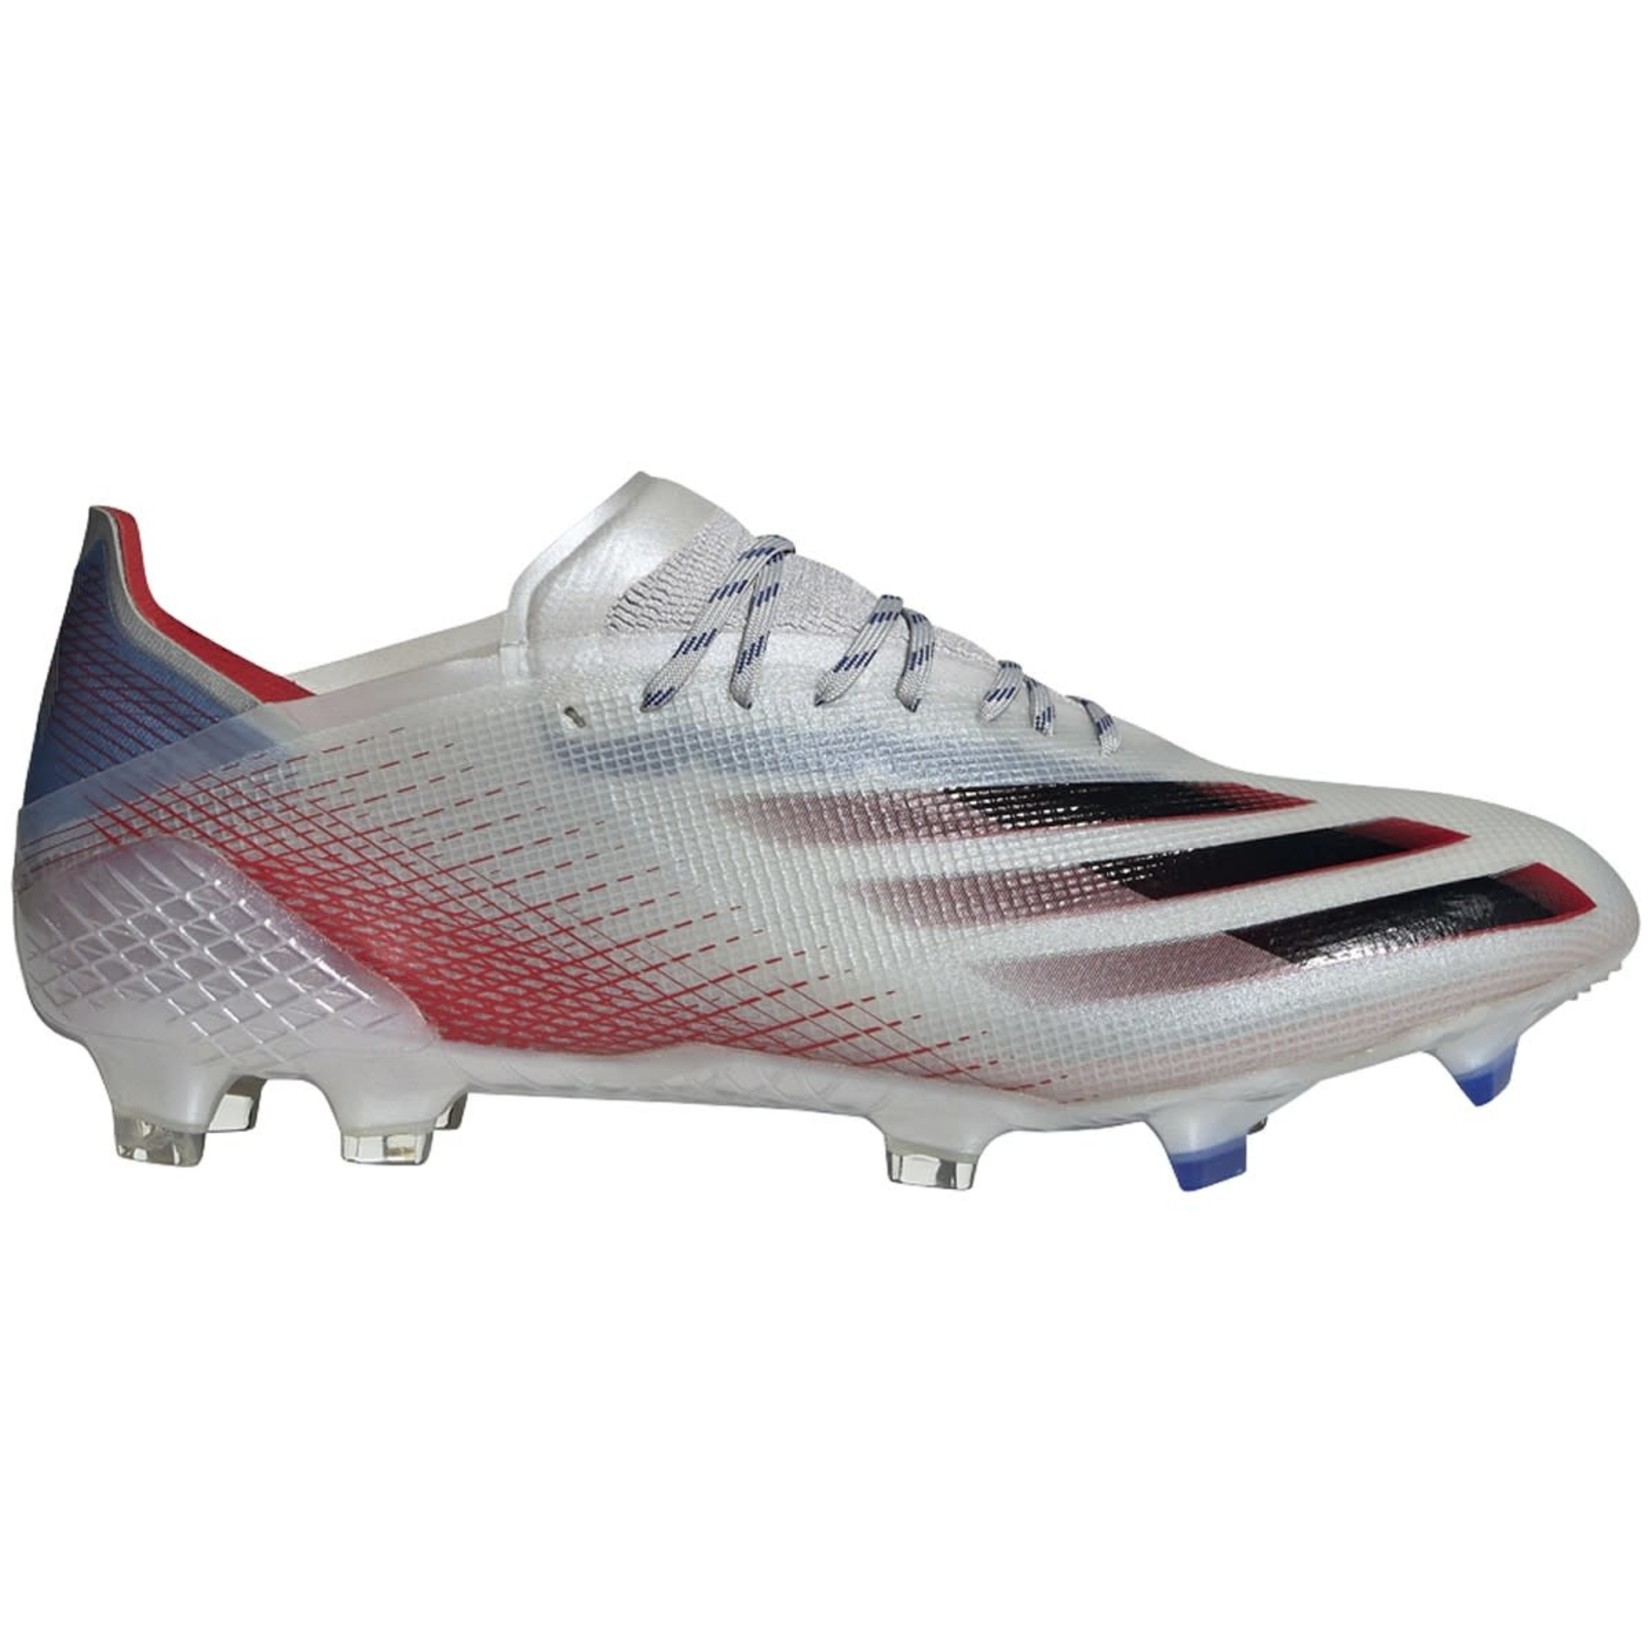 ADIDAS X GHOSTED.1 FG (SILVER/RED/BLUE)